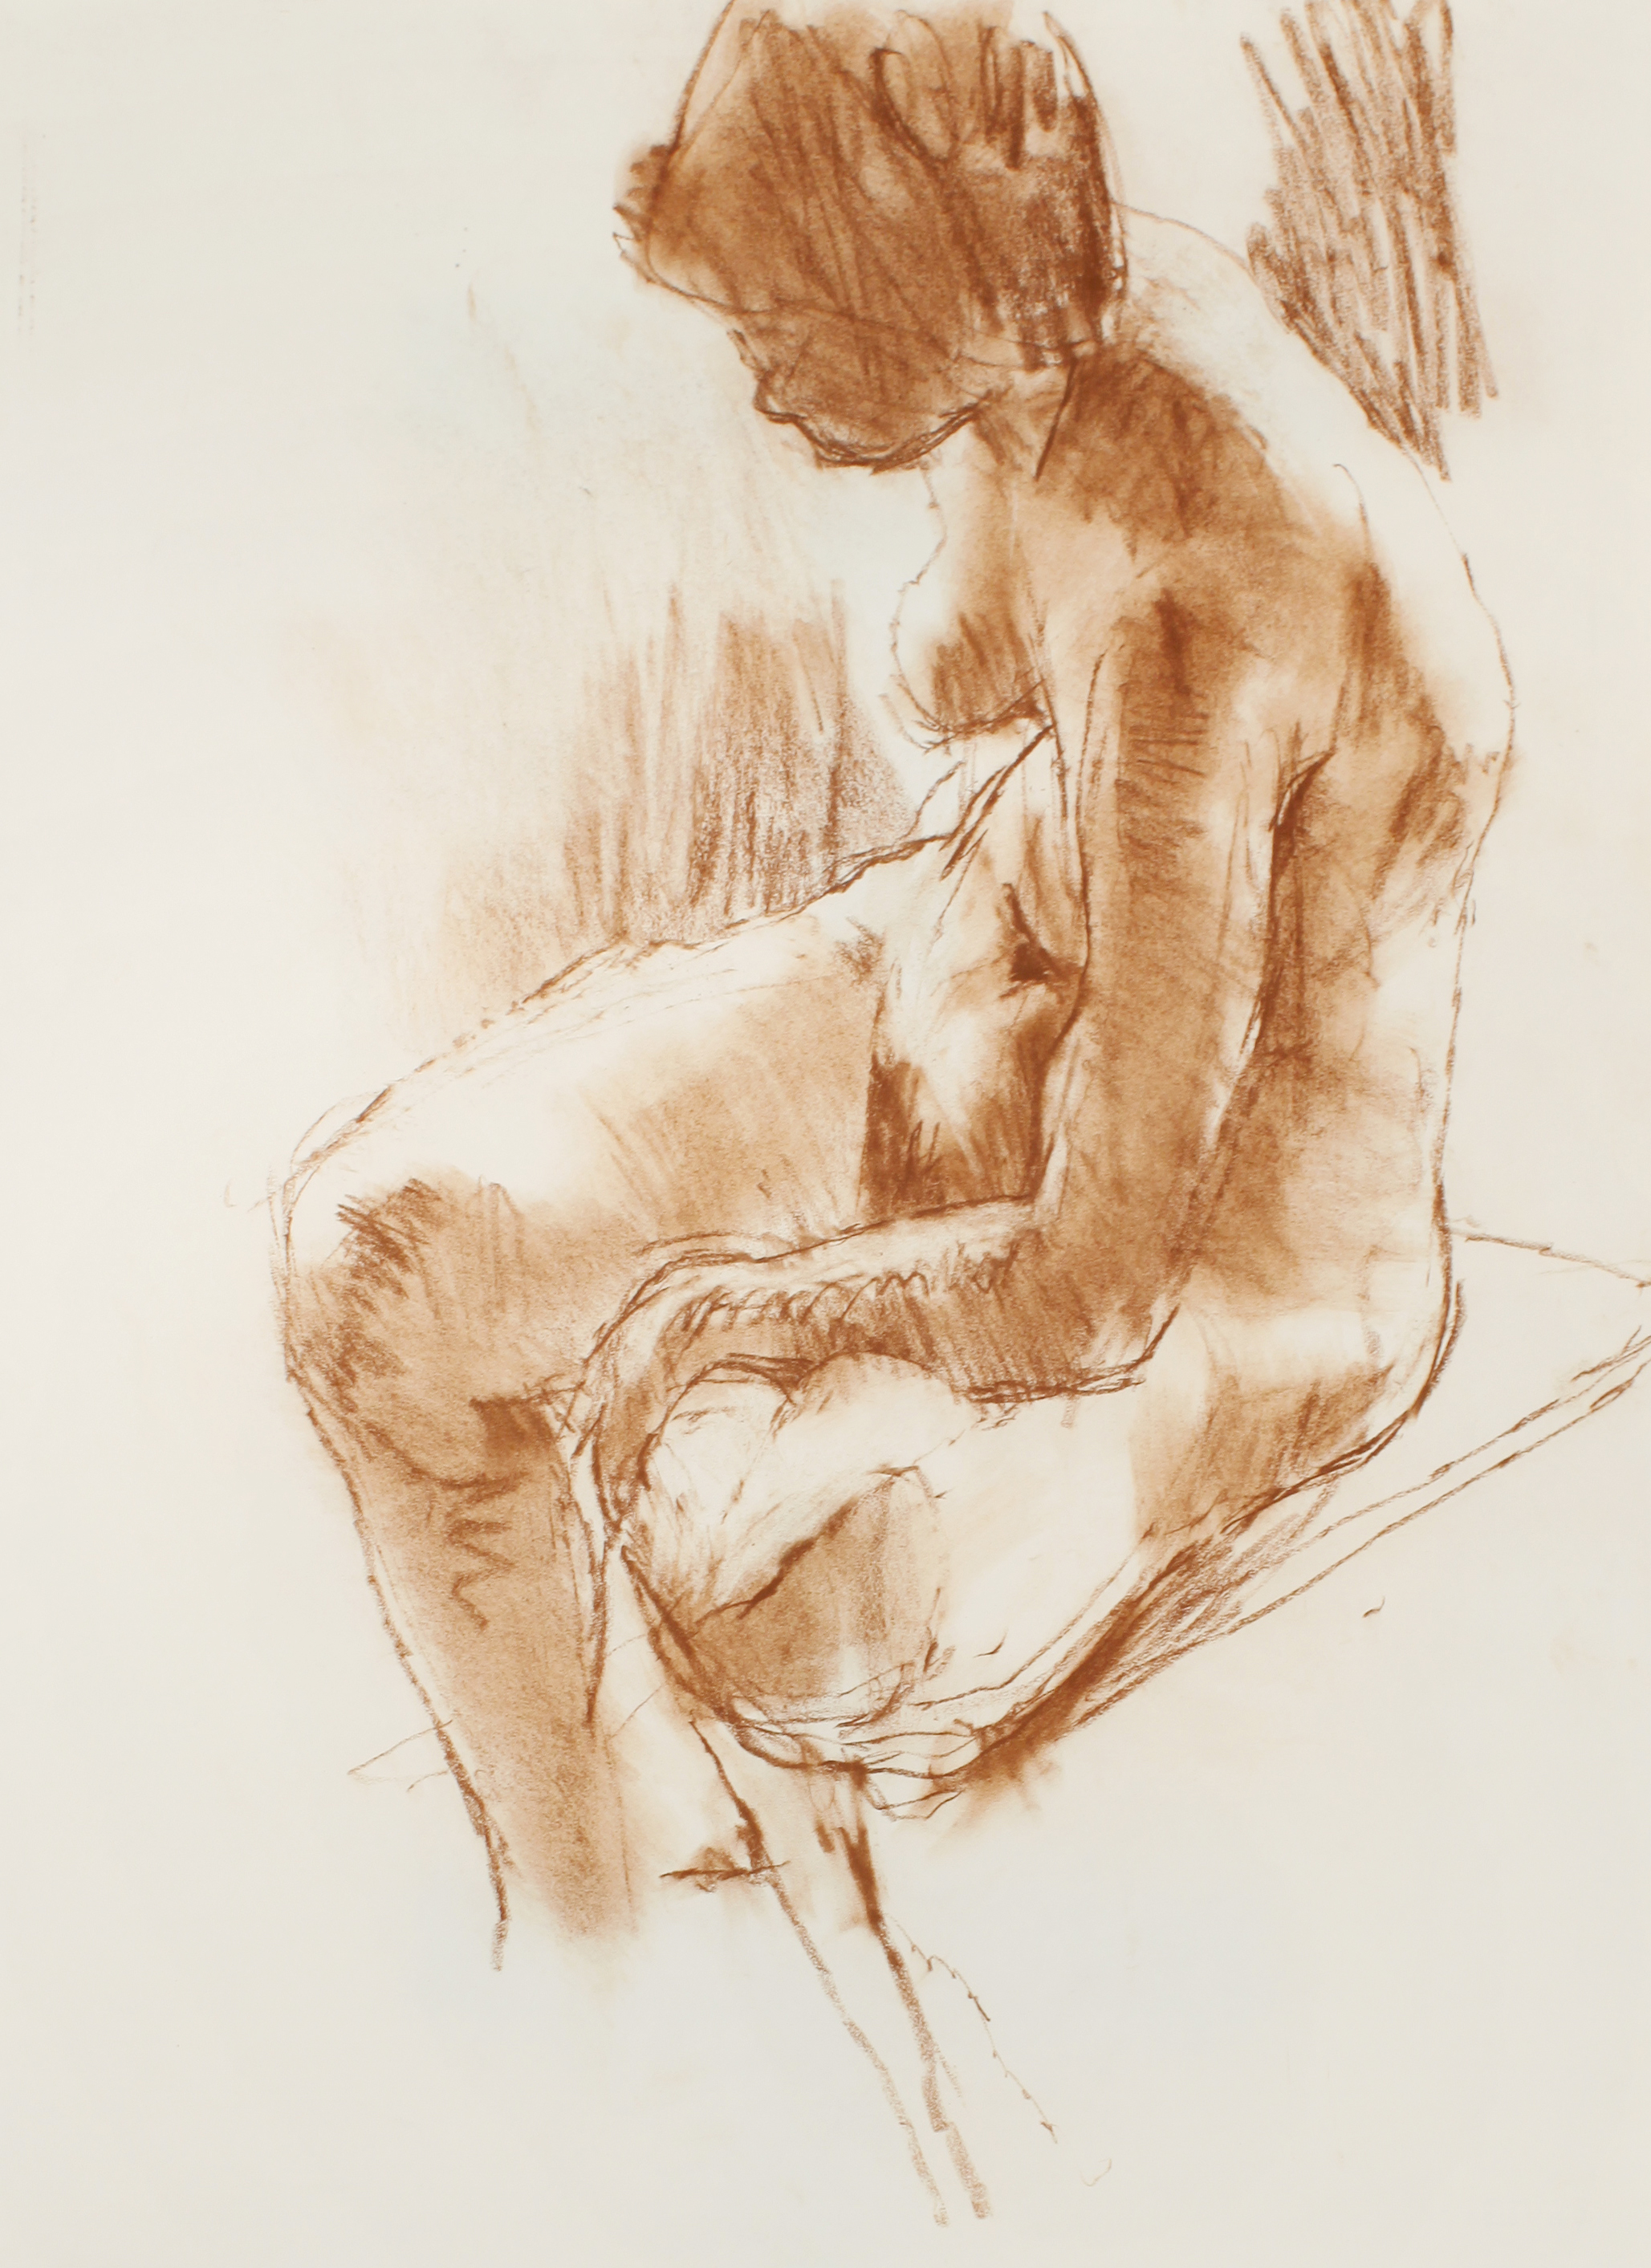 1980s_Seated_Nude_with_Bent_Leg_brown_pastel_on_paper_26x19in_WPF459.jpg